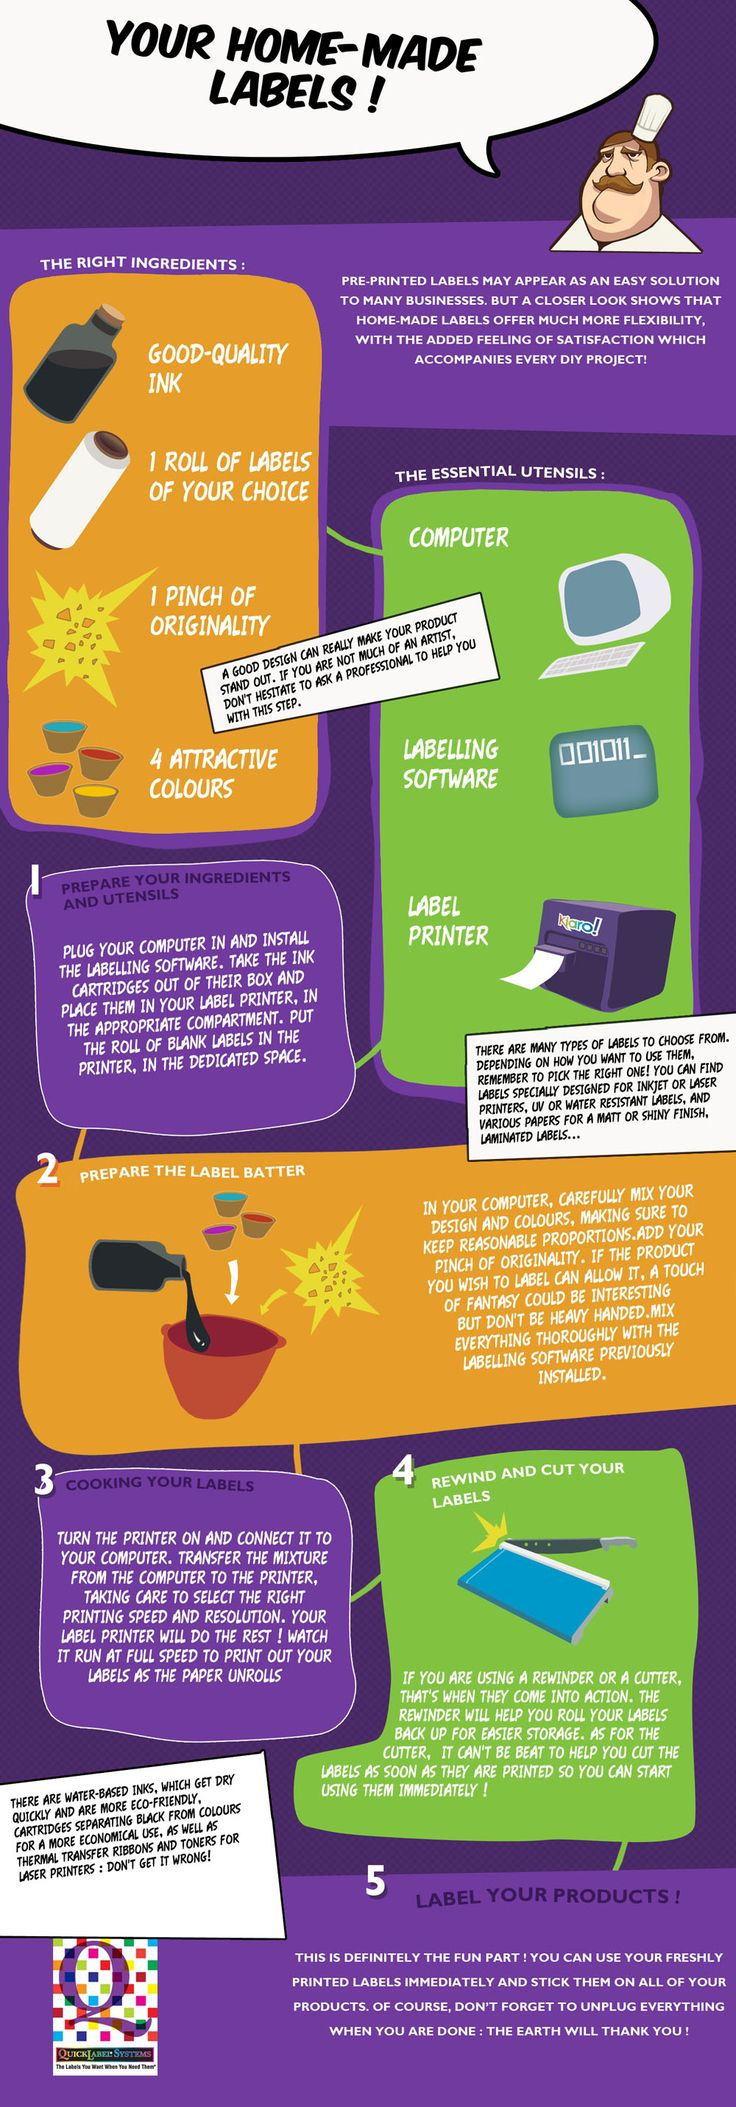 Start with an in-house label printer  -  The infographic shows that having your own label printer is one of the essential ingredients for successful, attractive in-house label printing. You can then experiment at will. http://www.quicklabel.co.uk/